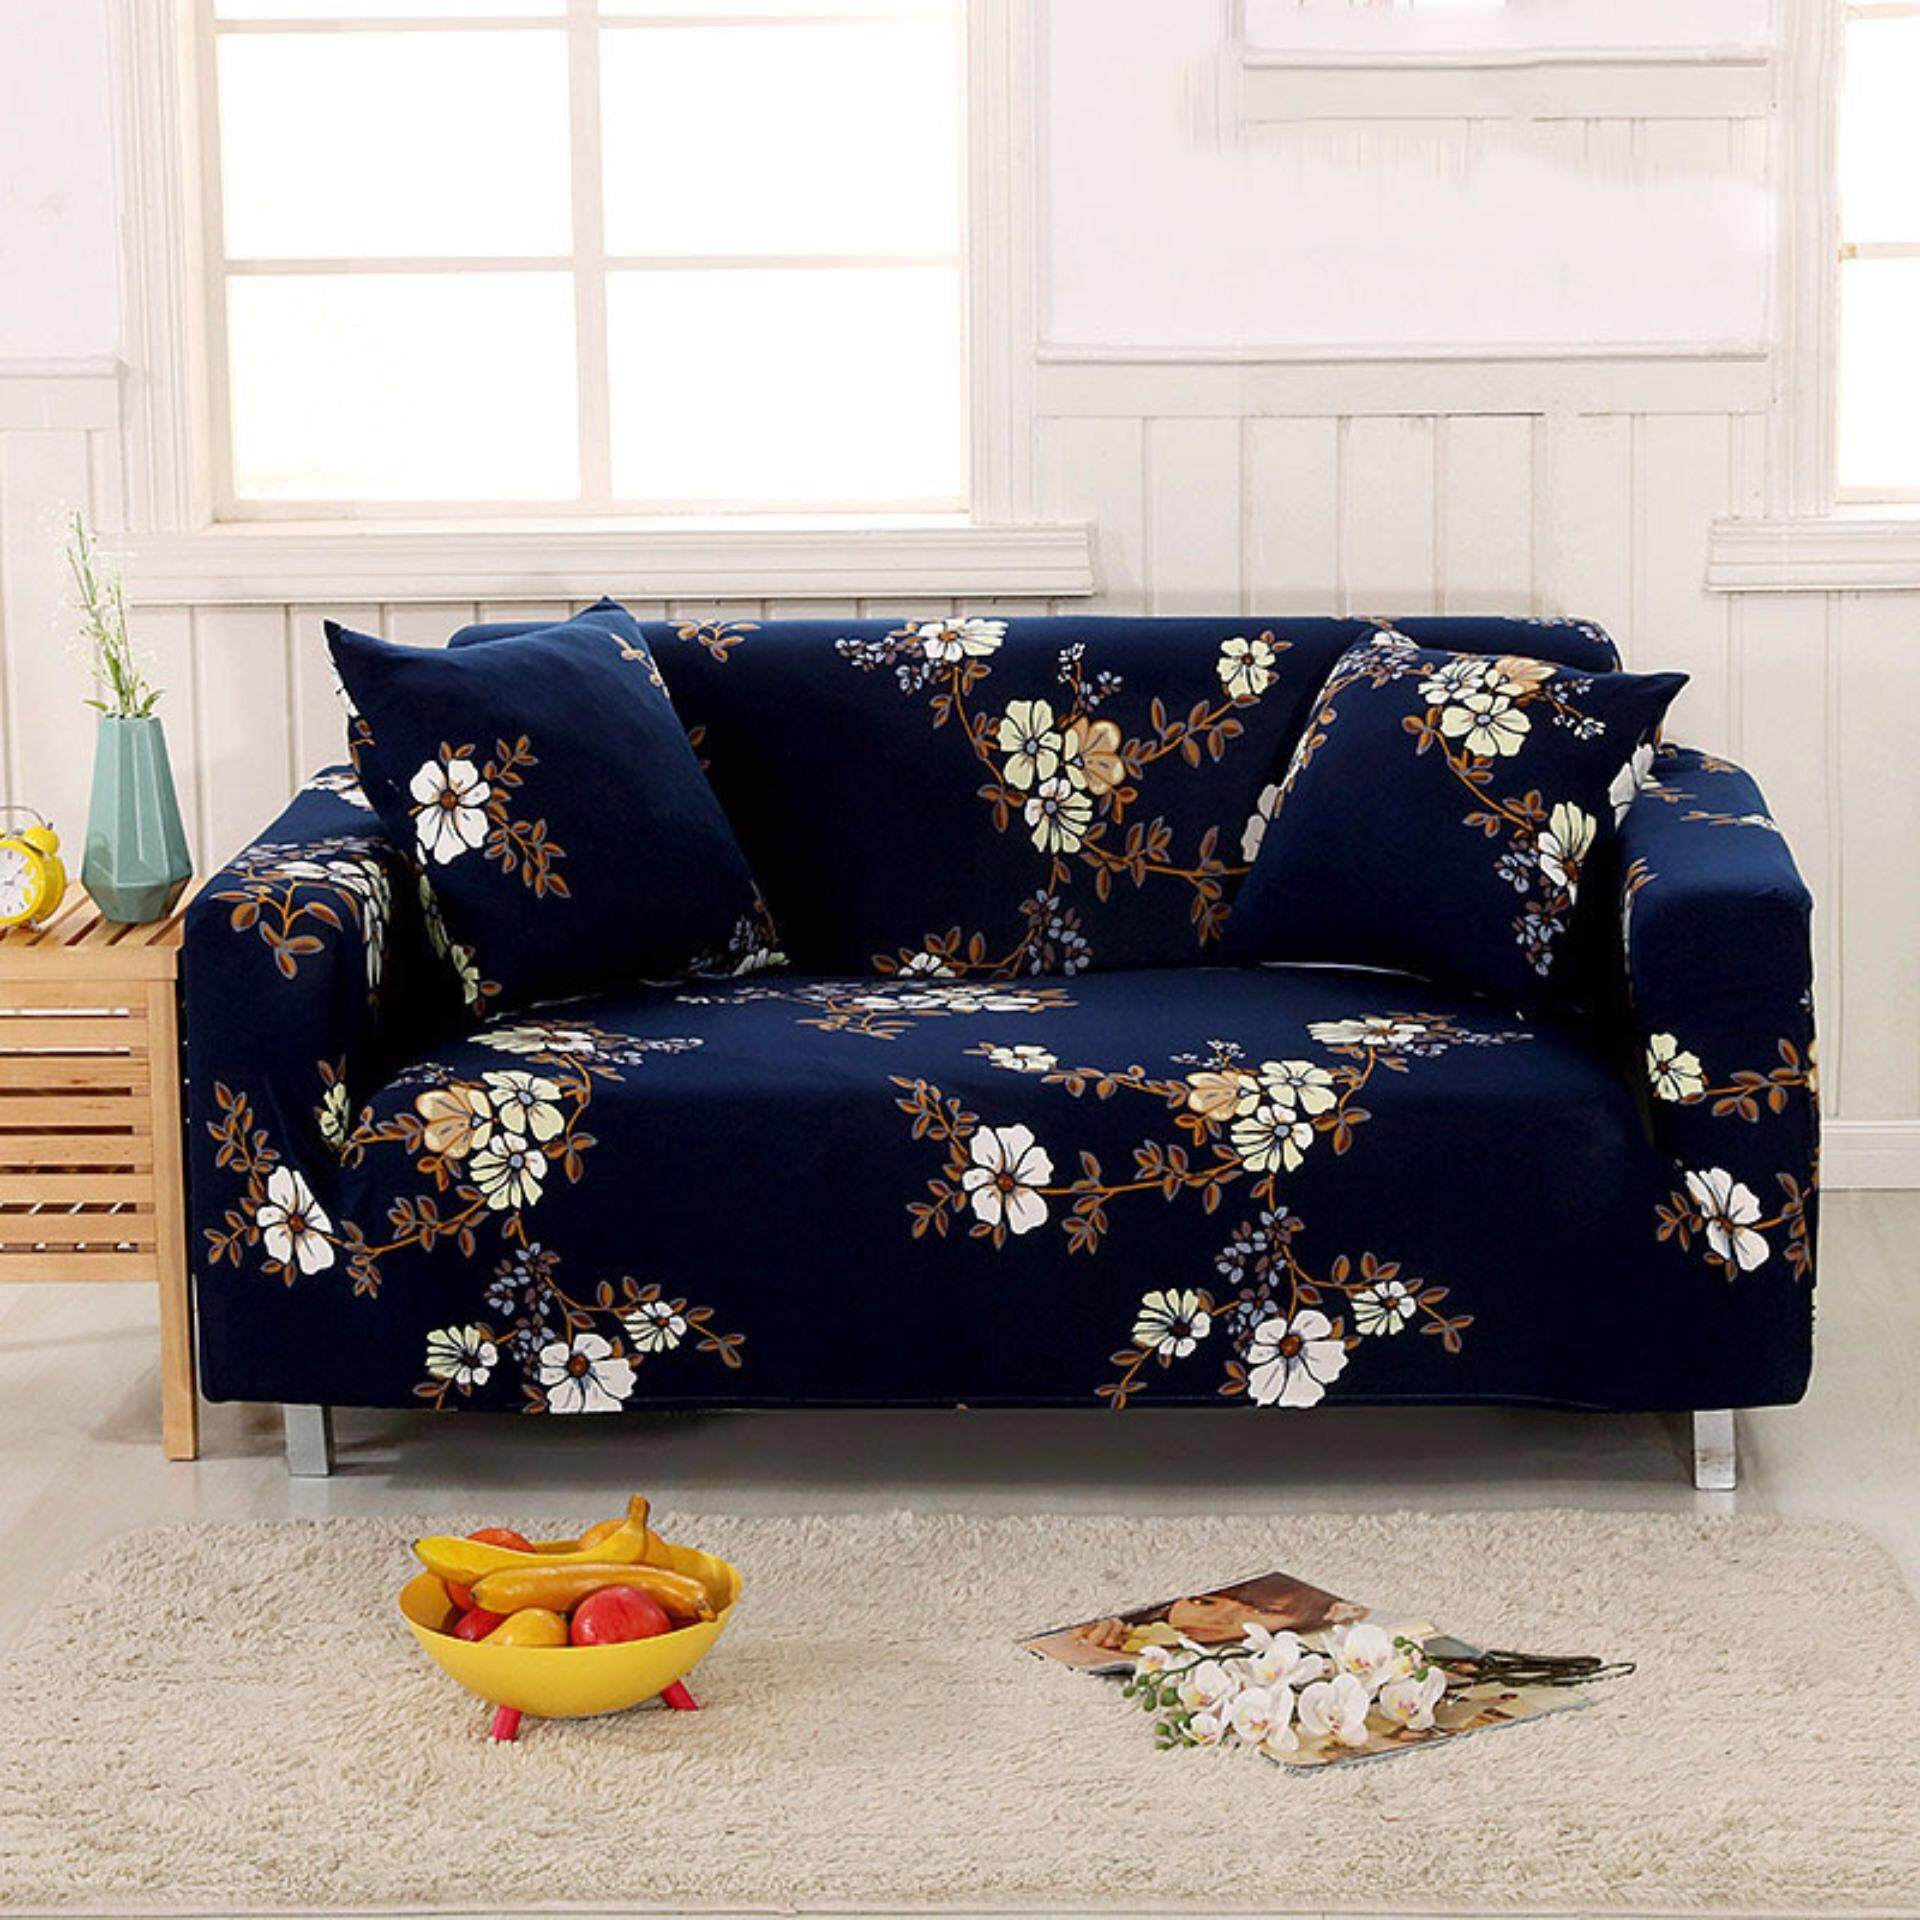 How To Protect My Fabric Sofa Aecagra Org